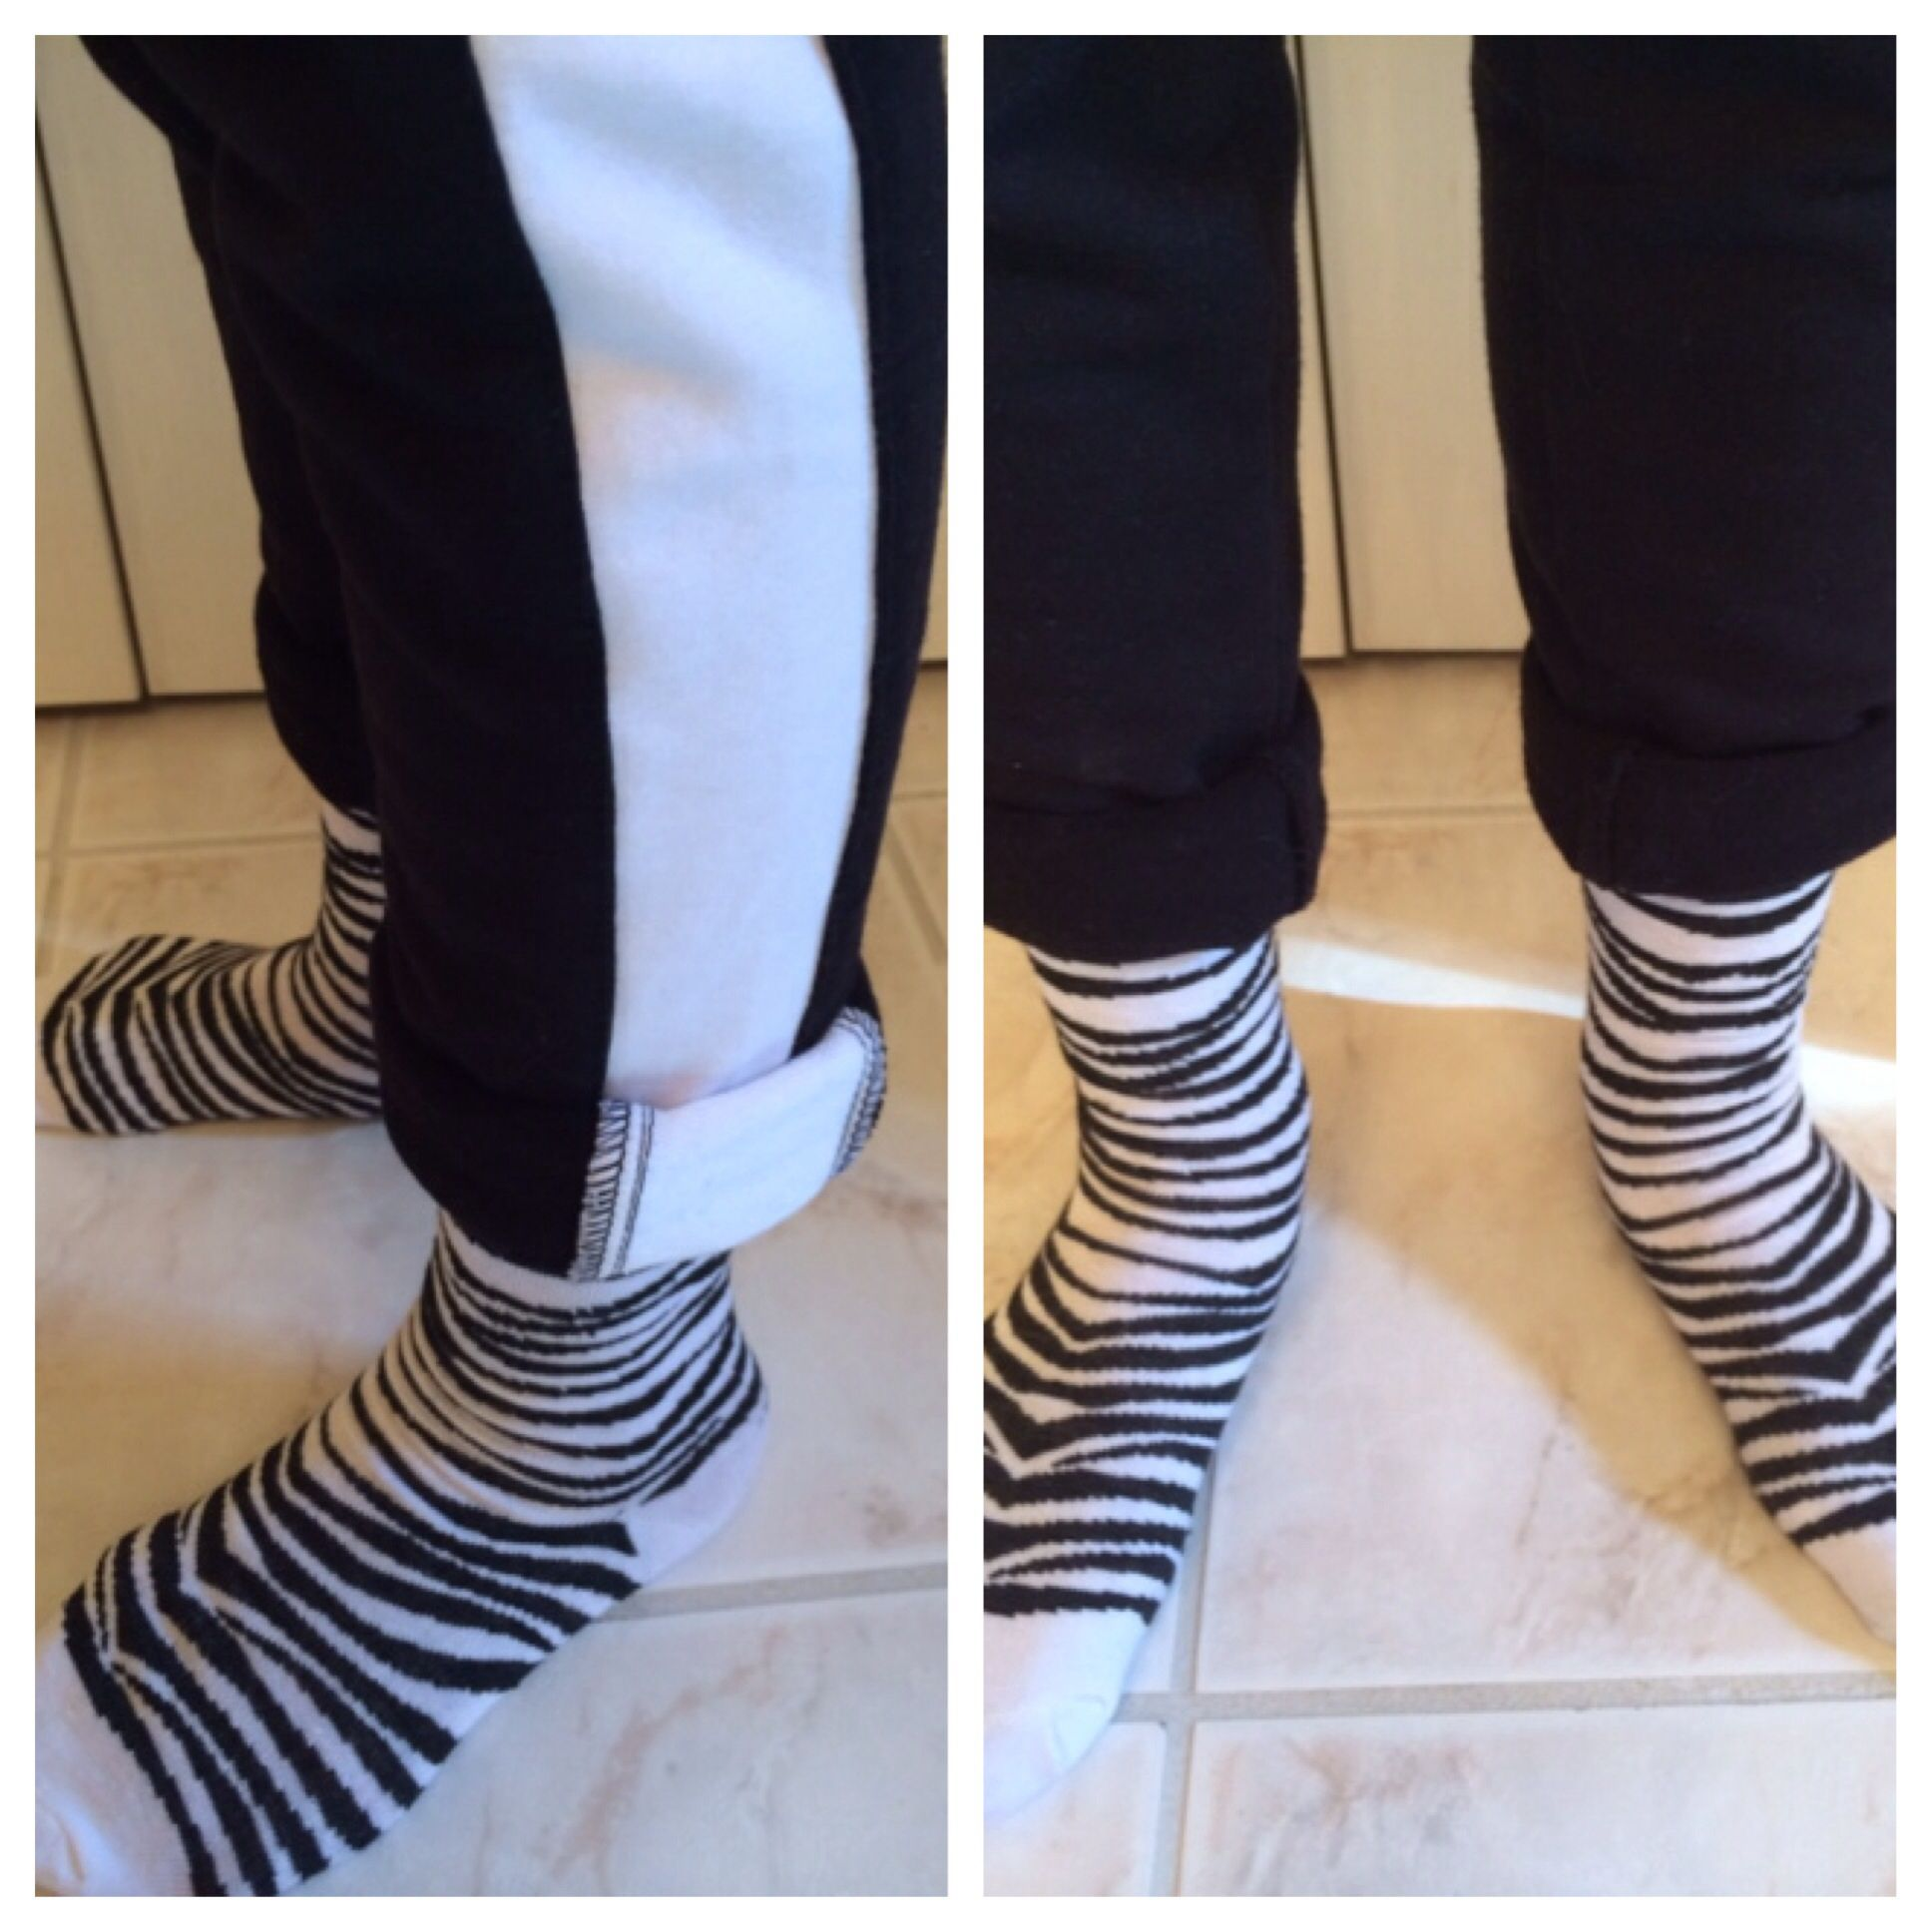 #KidStyle #KidAccessories.....The socks came from The Dollar Tree..........#BargainShopper